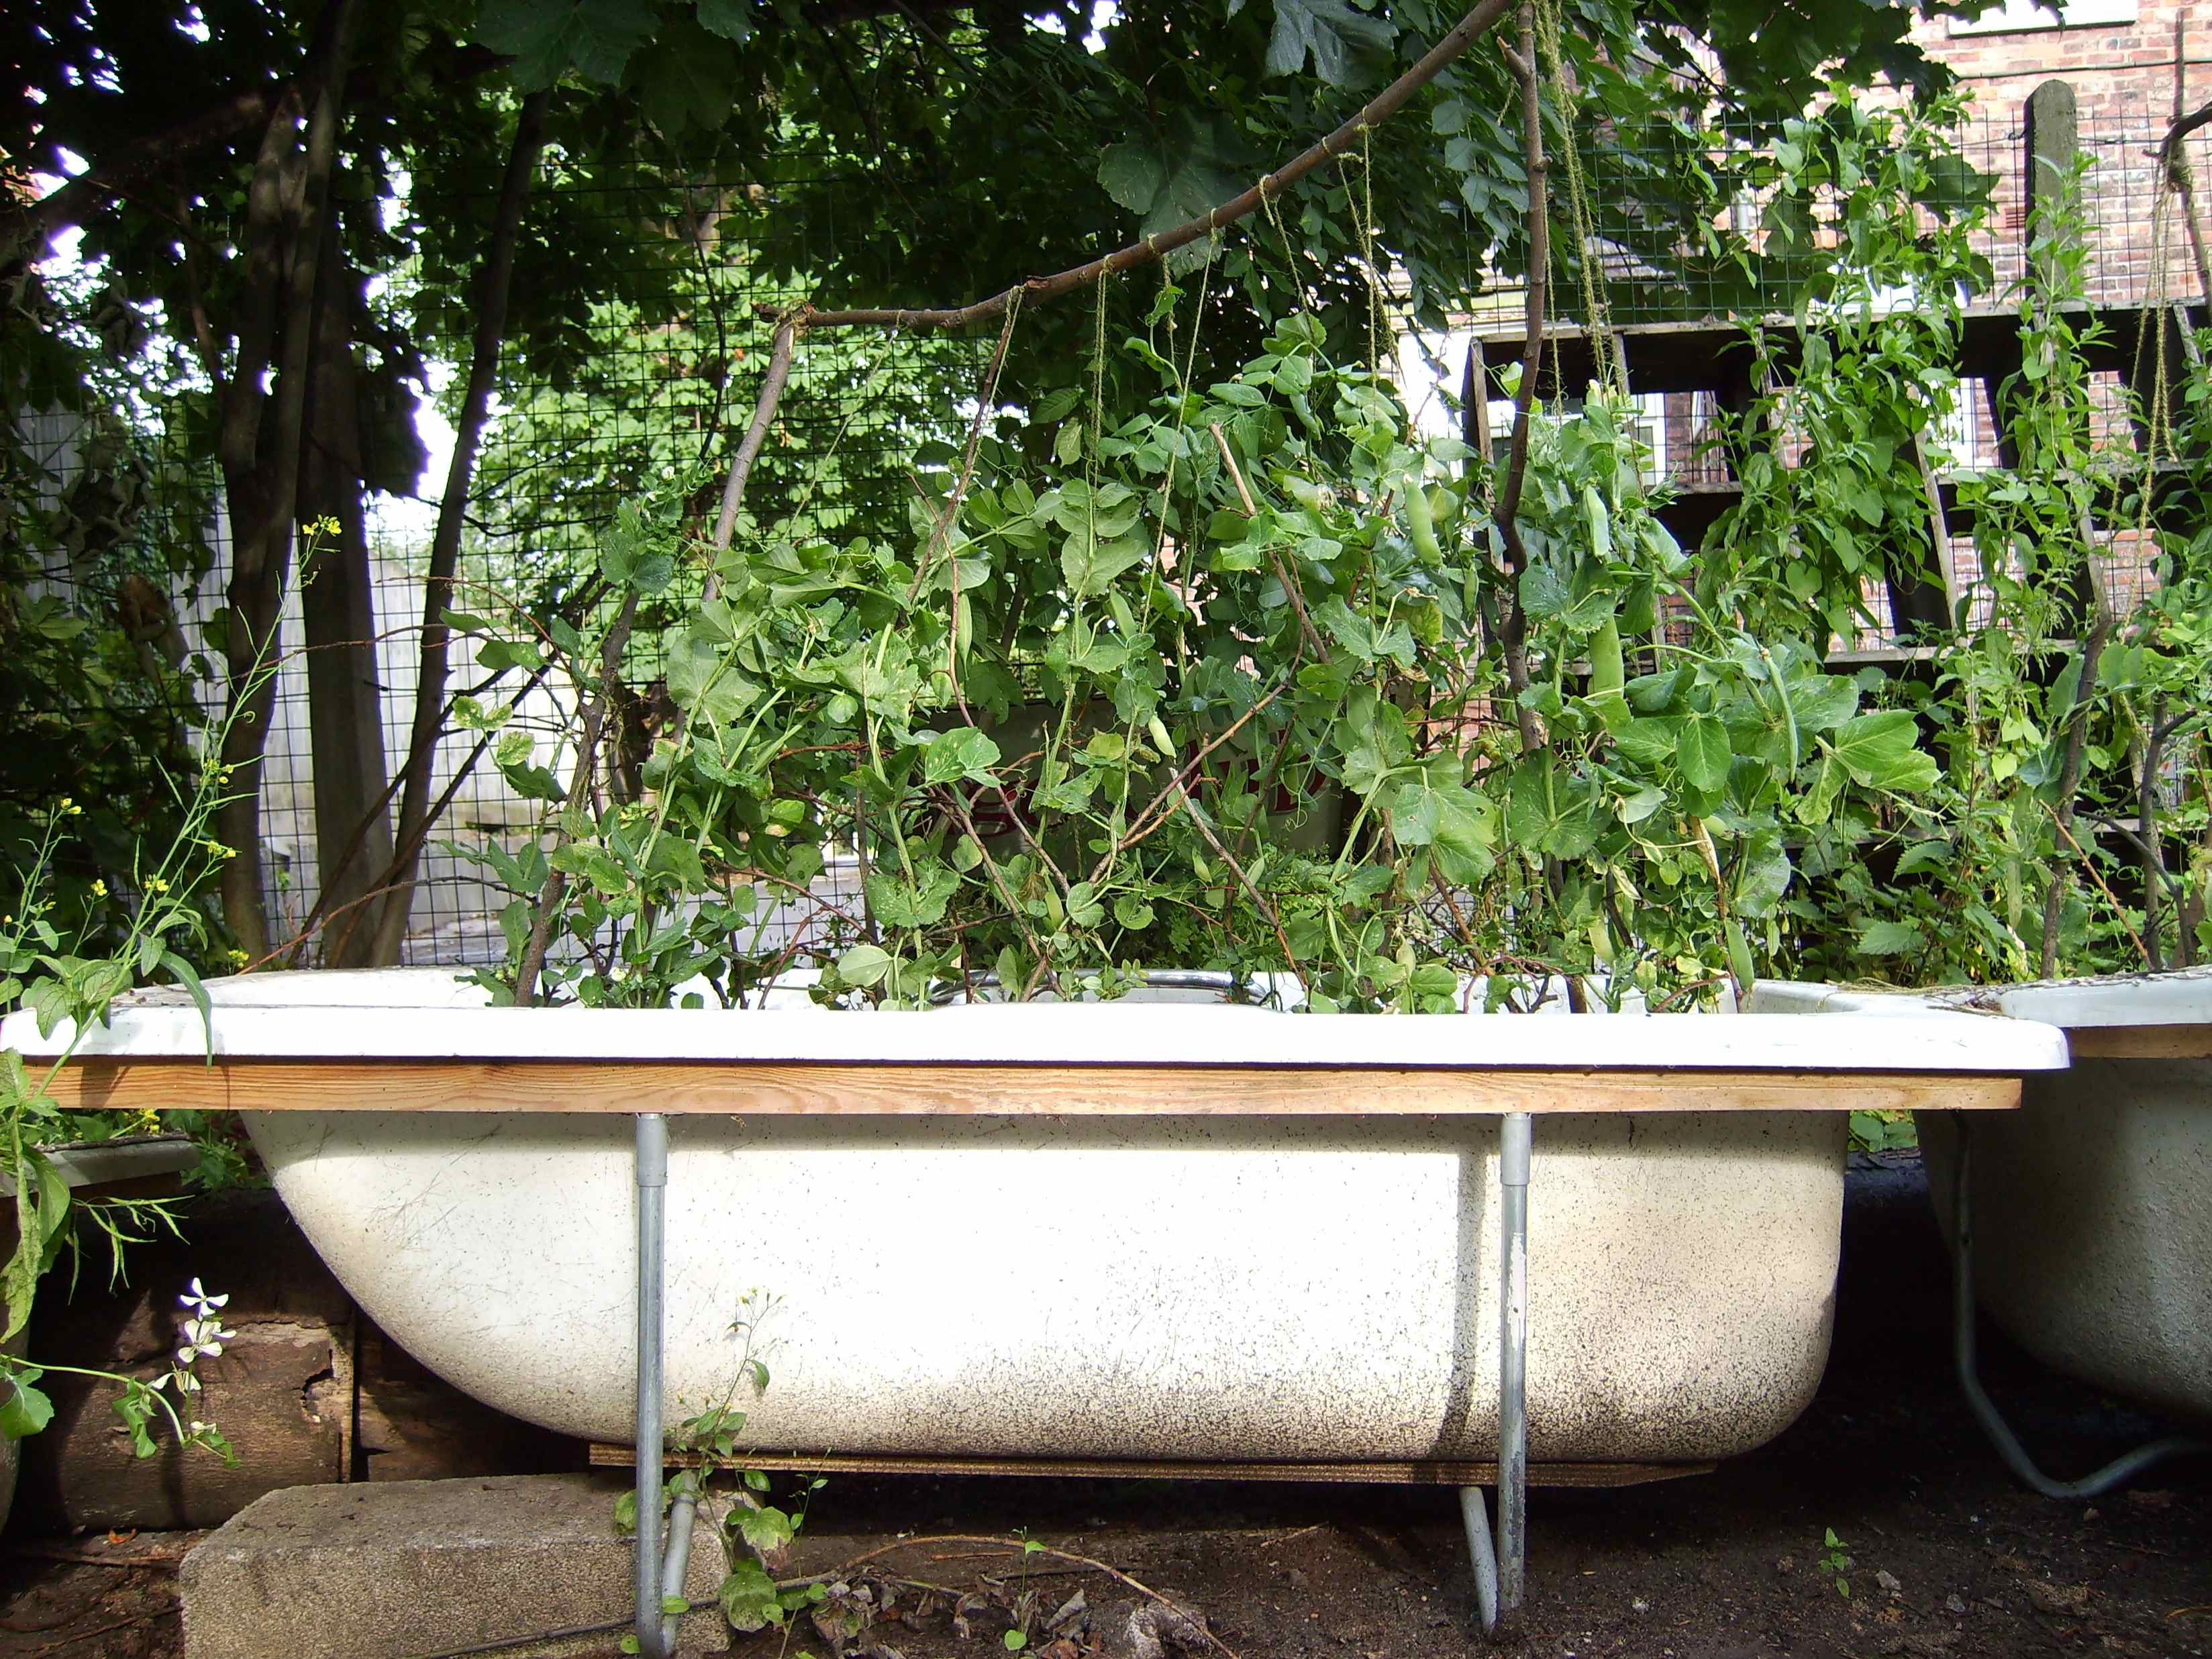 Peas harvested from this bath